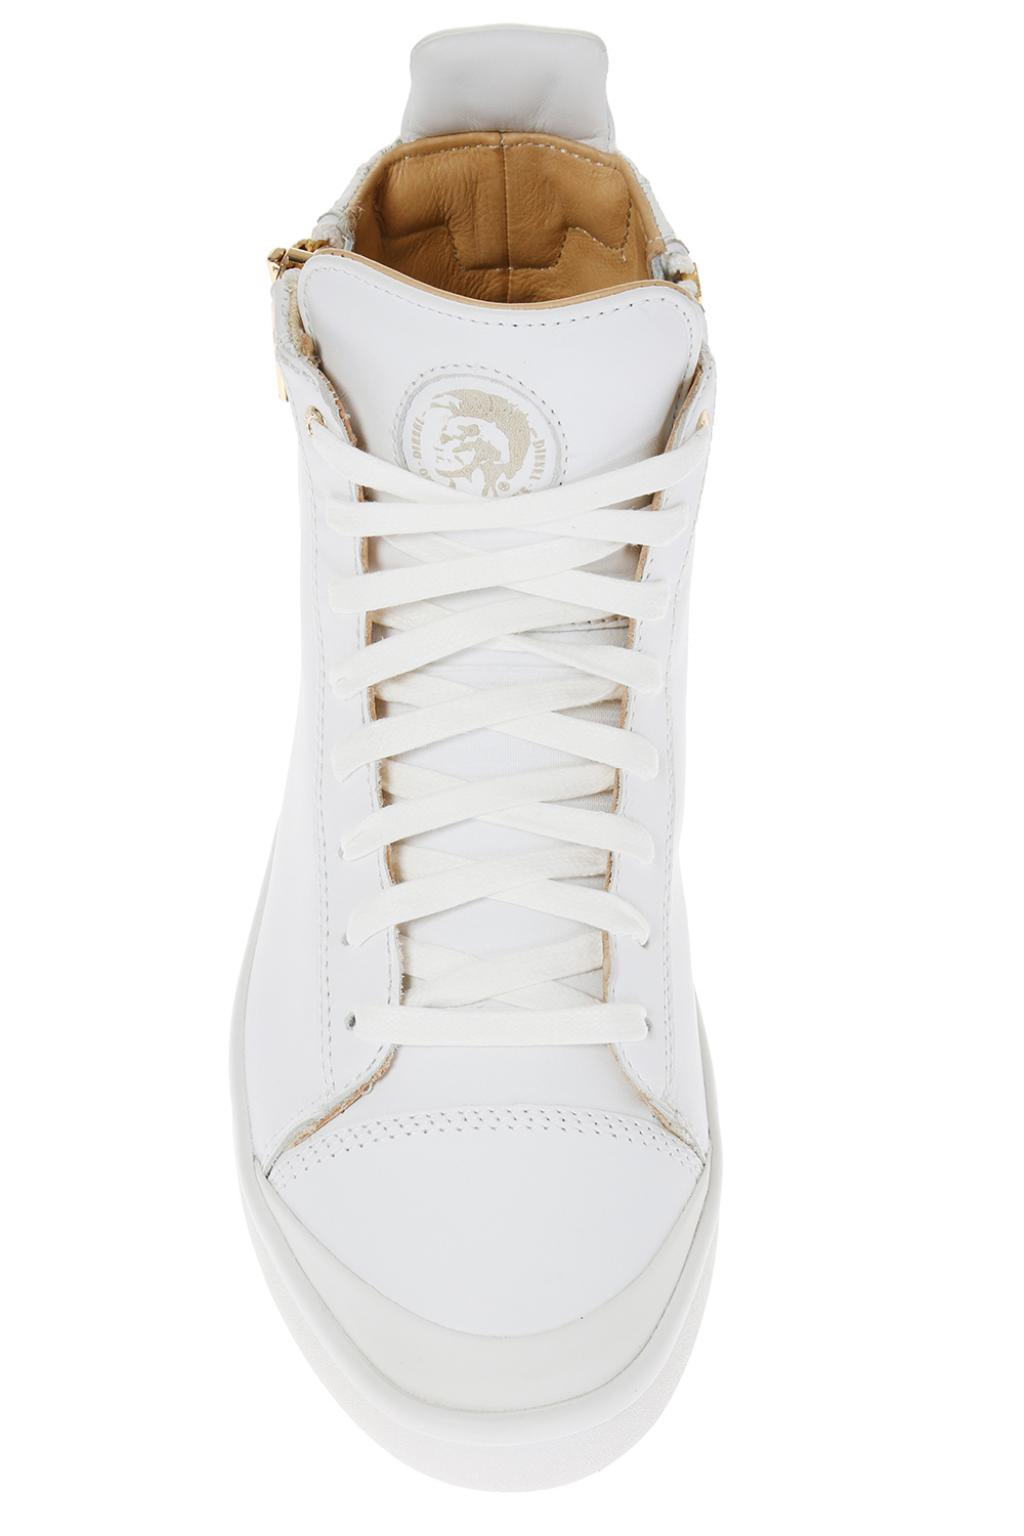 Diesel 'S-Nentish' high-top sneakers